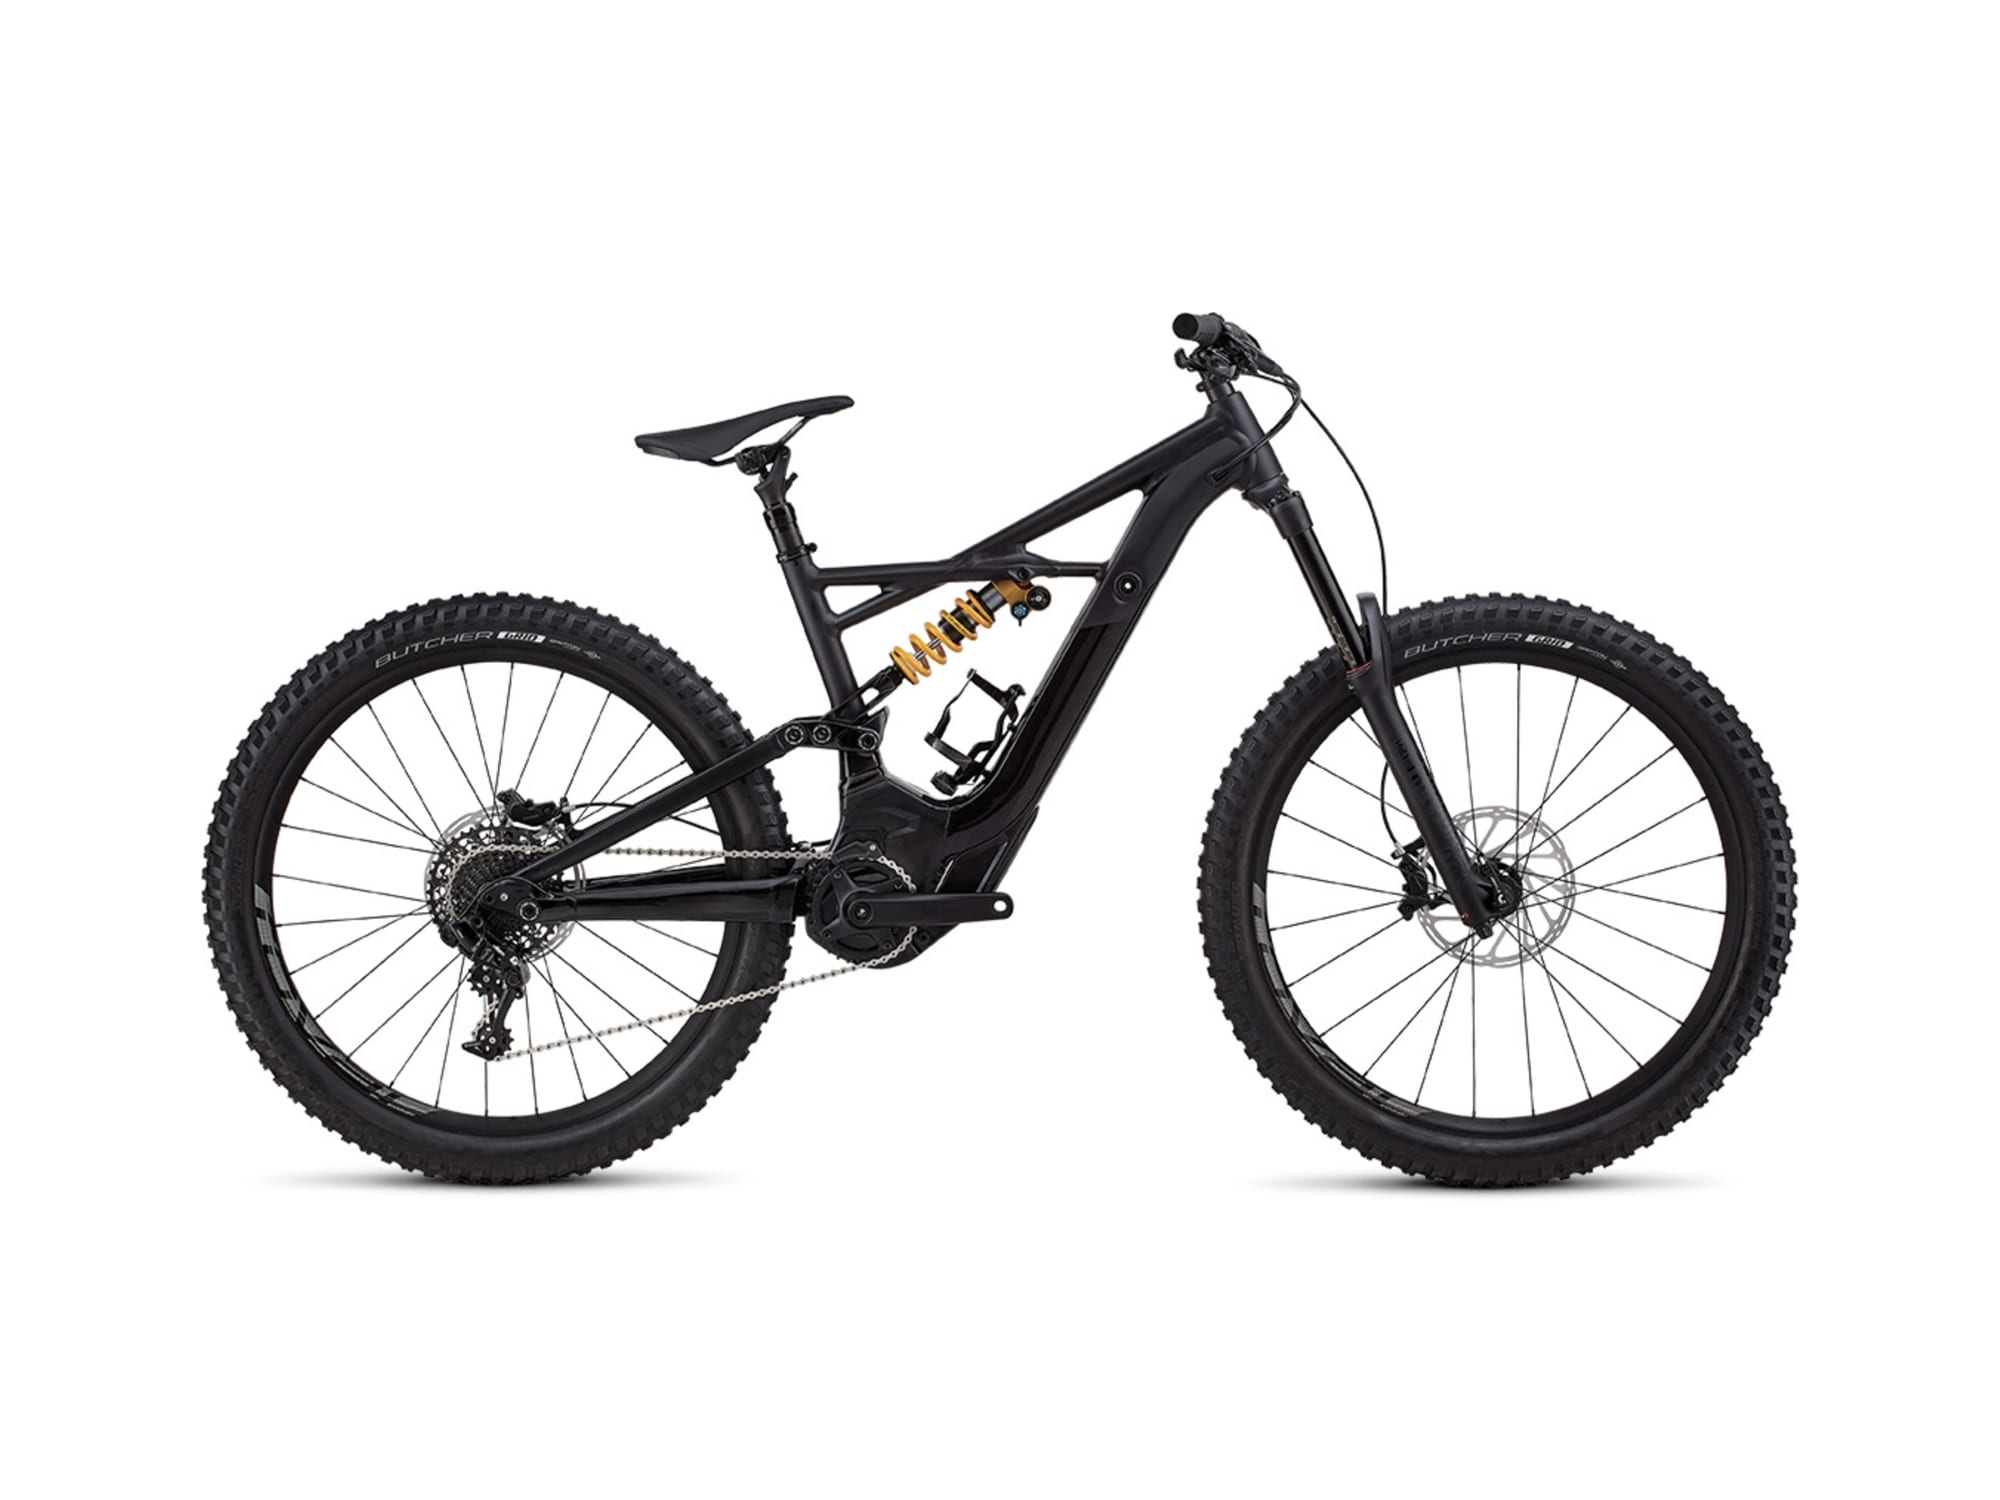 Specialized Turbo Kenevo Expert Review - Prices, Specs, Videos, Photos